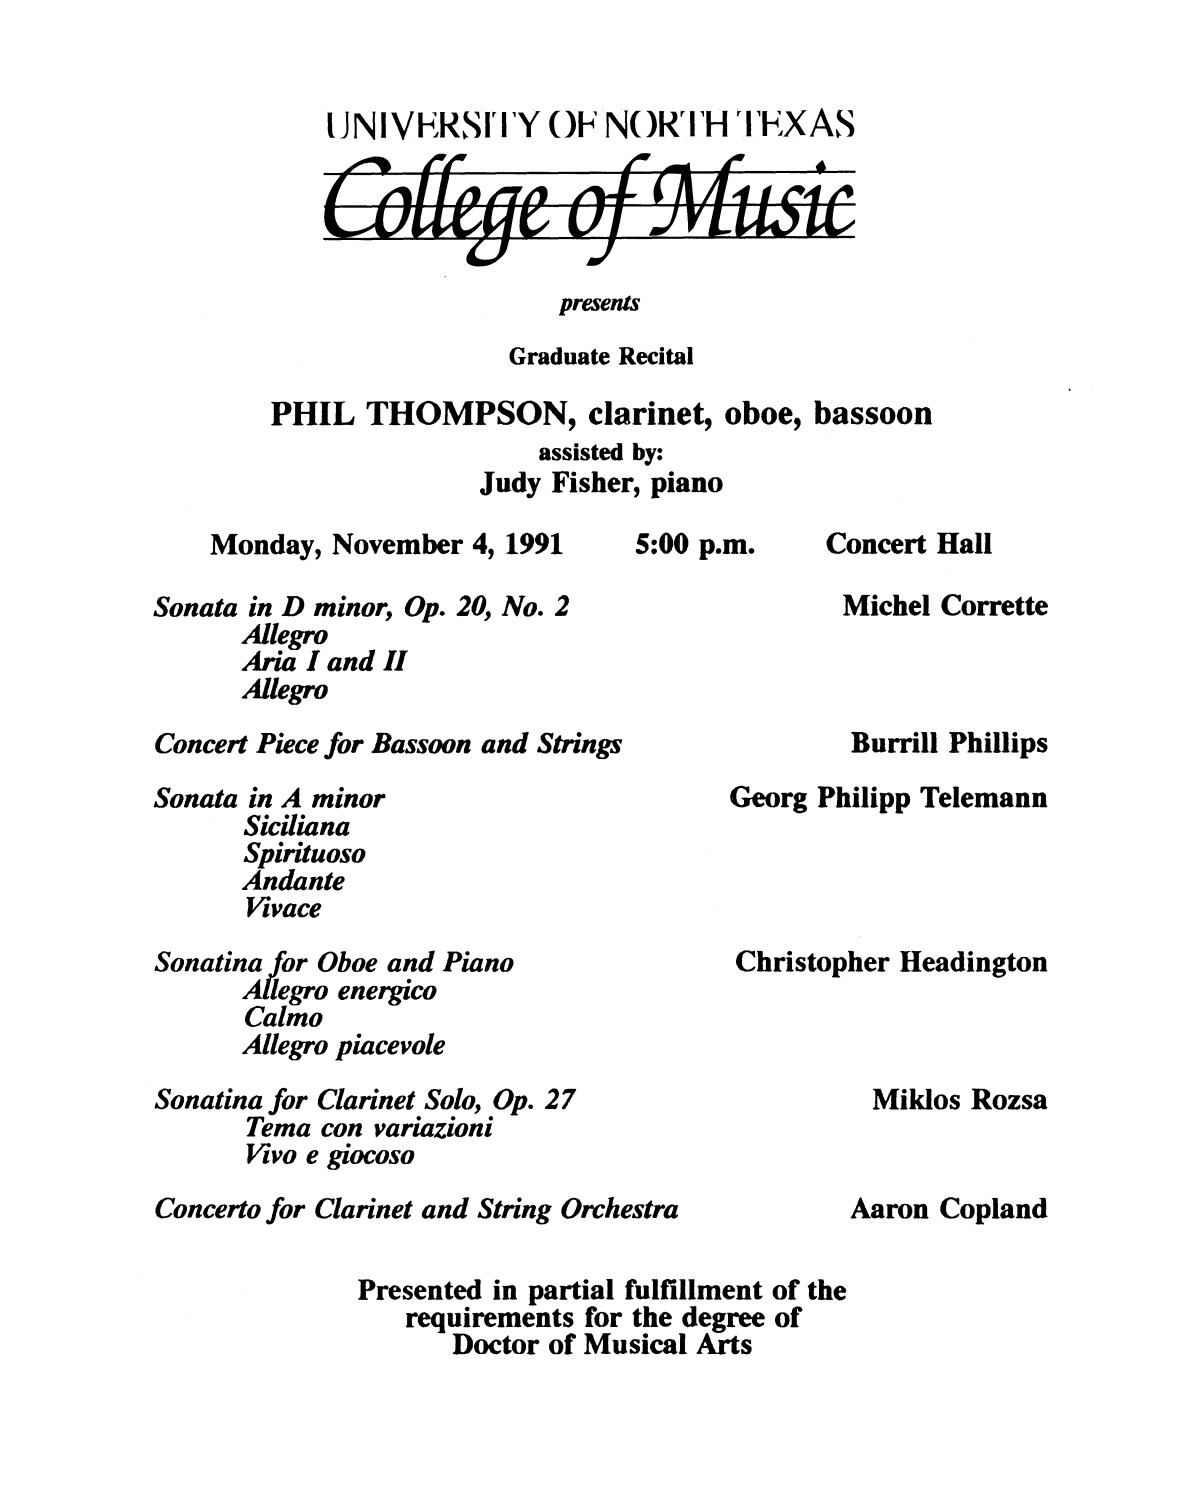 College of Music program book 1991-1992 Student Performances Vol. 2                                                                                                      [Sequence #]: 32 of 310